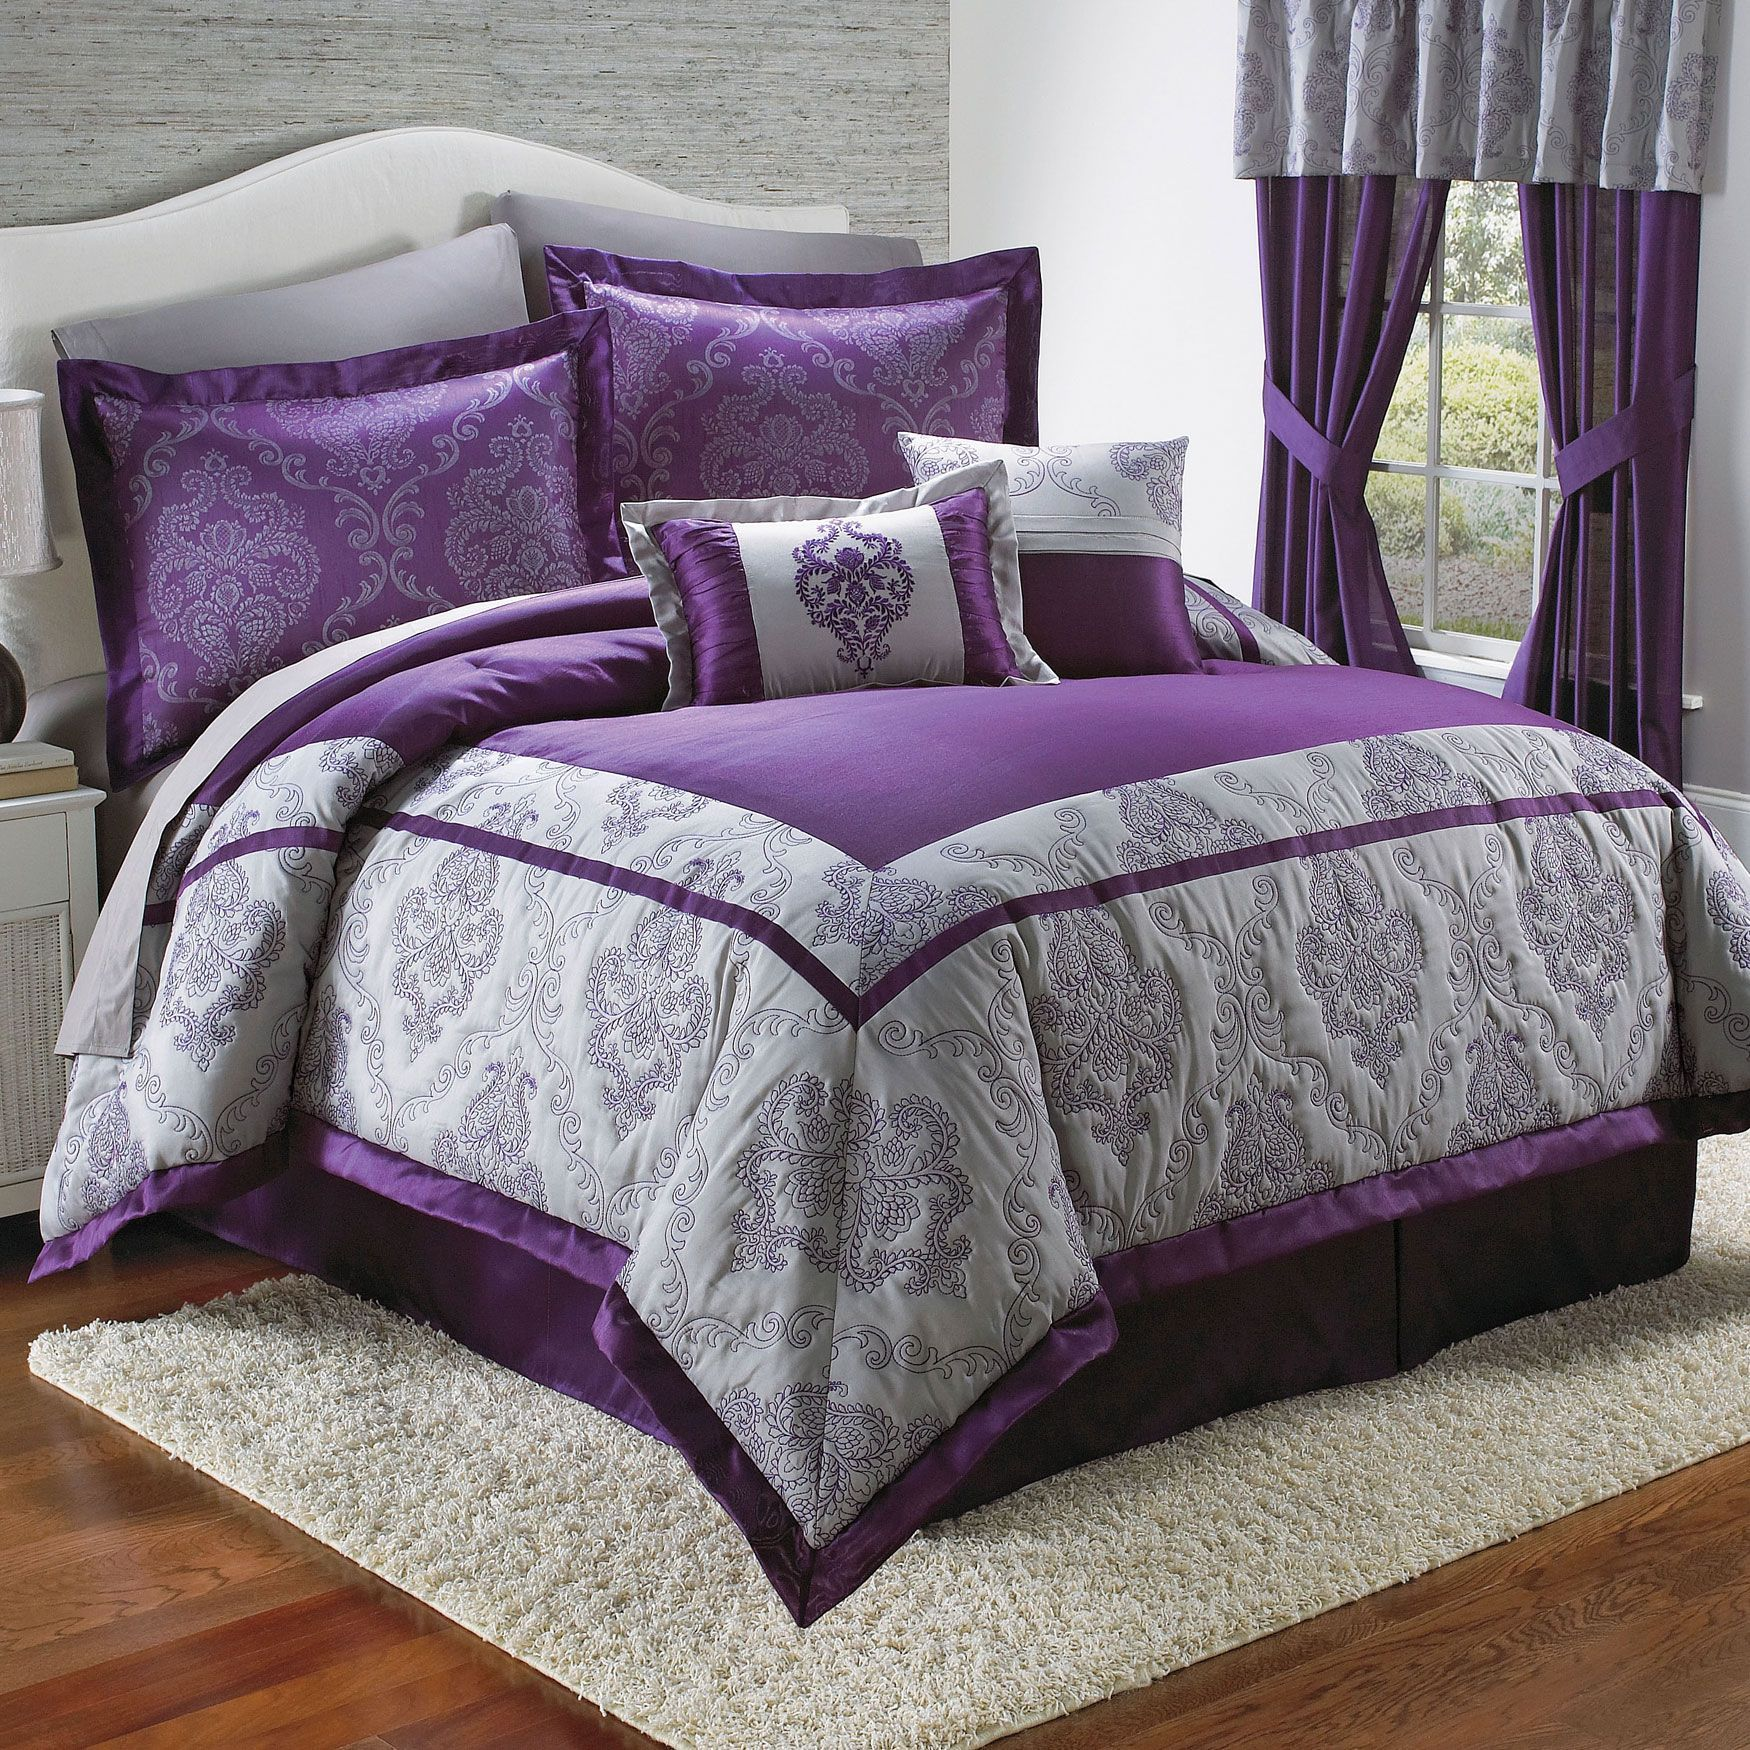 Delila 6 Pc Embroidered Comforter Set More With Images